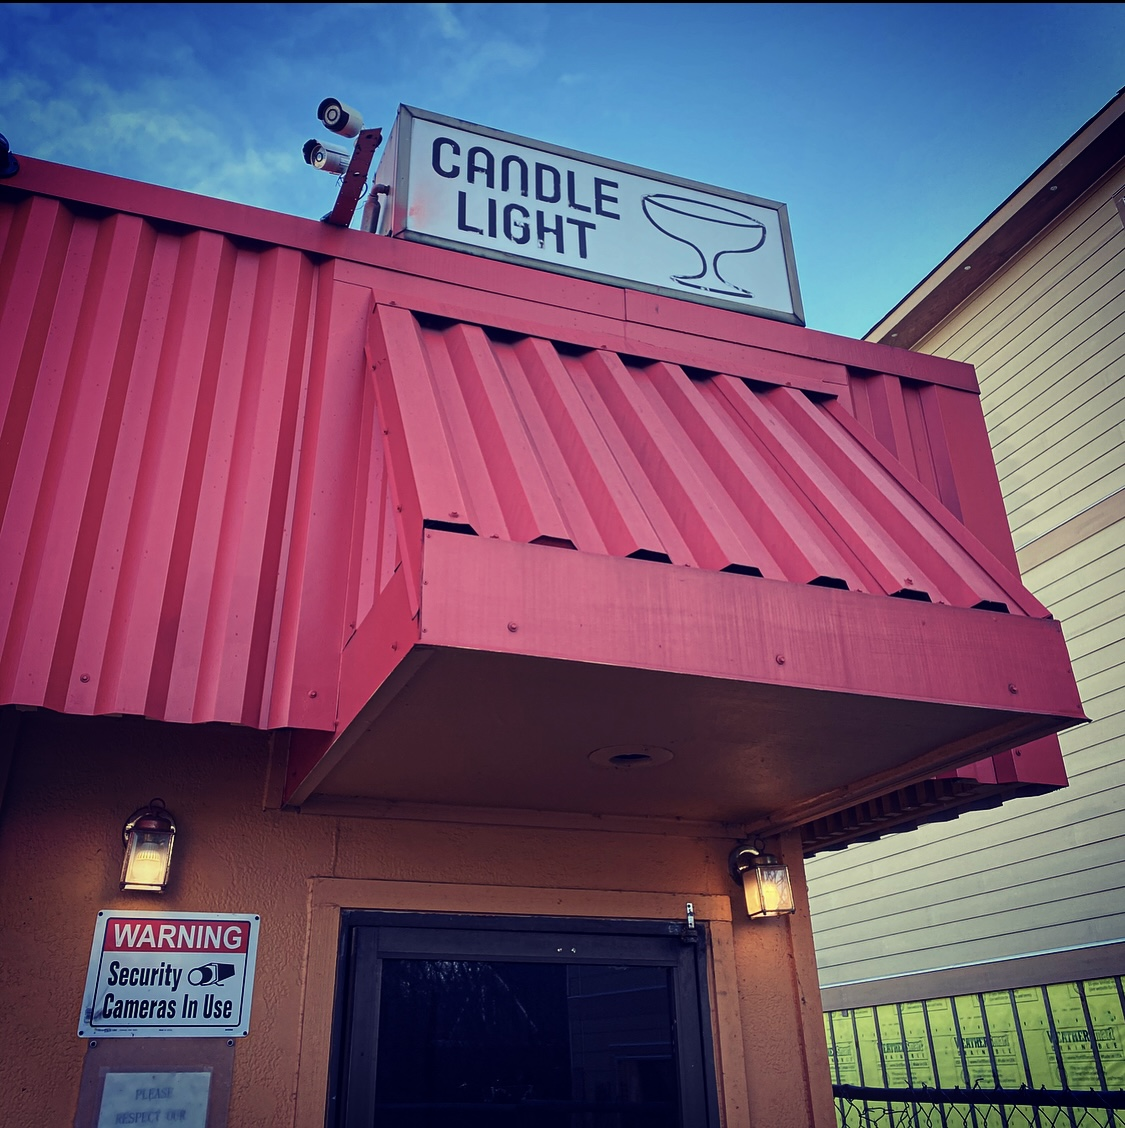 The Candlelight Restaurant and Lounge Portland Dive Bars Photos by Steven Shomler